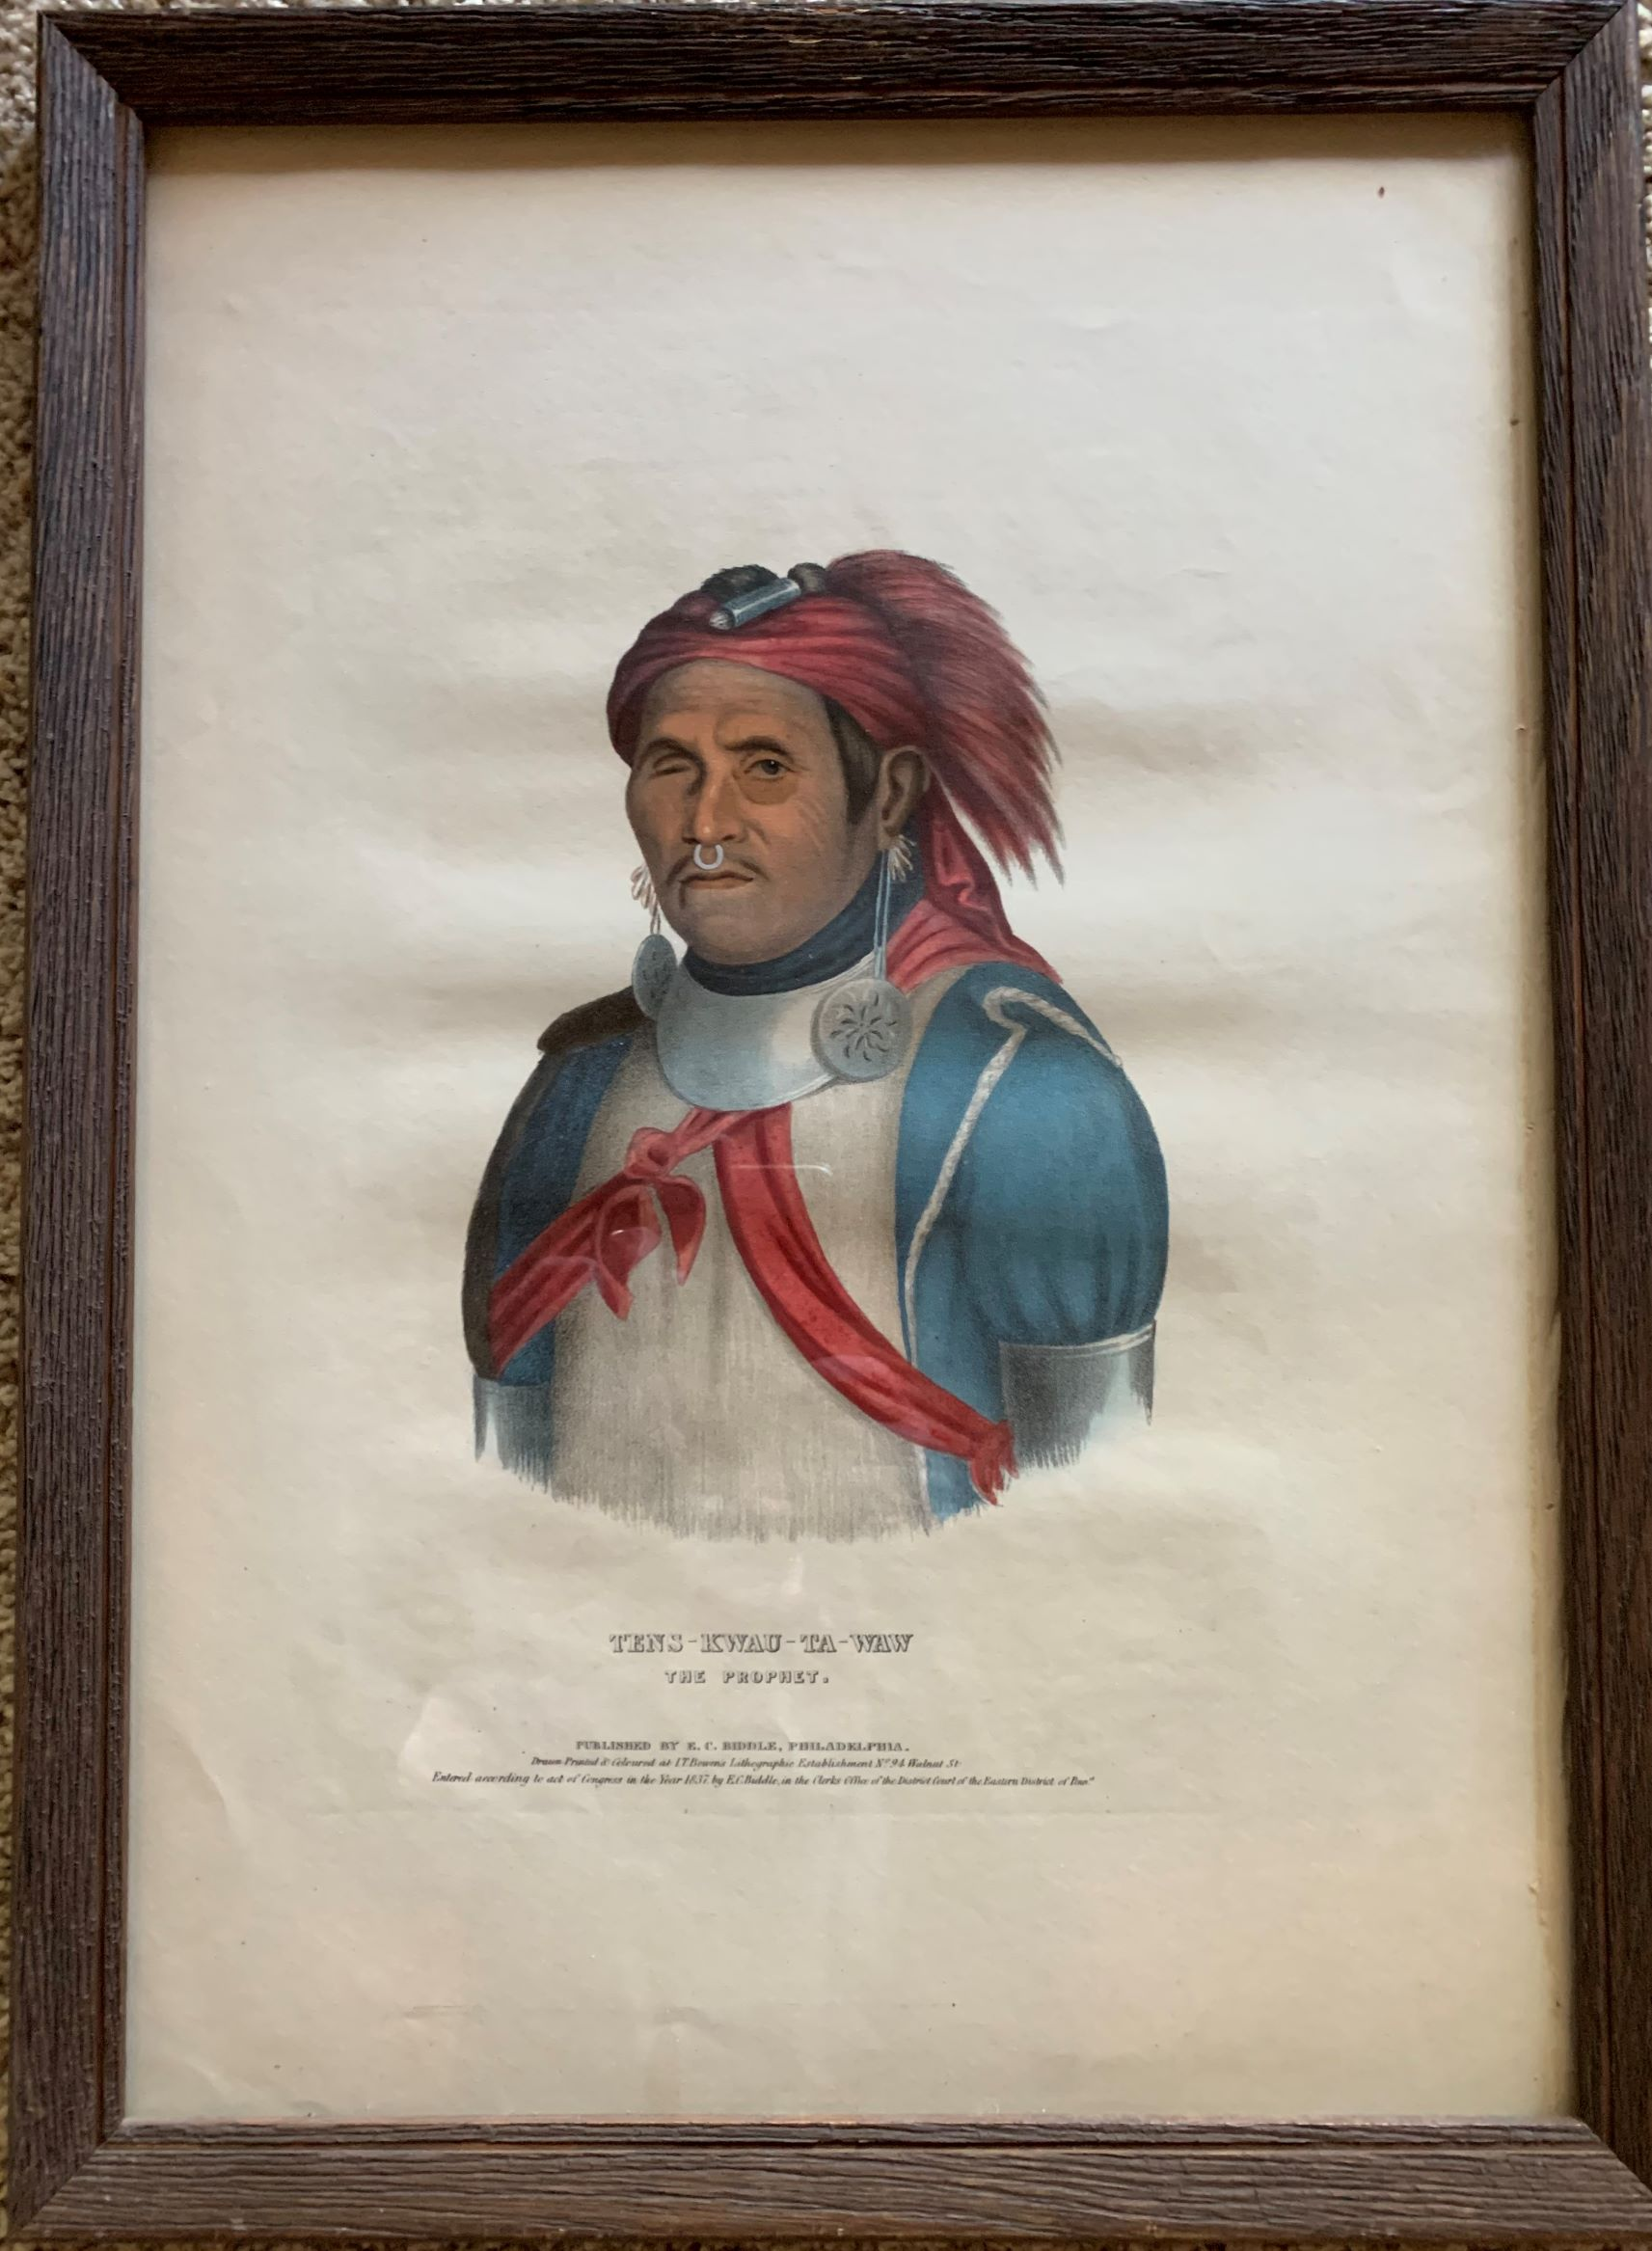 Image for Tens-Kwau-Ta-Wawsk, The Prophet.  Original hand-colored lithographic plate. From the painting by Charles Bird King.